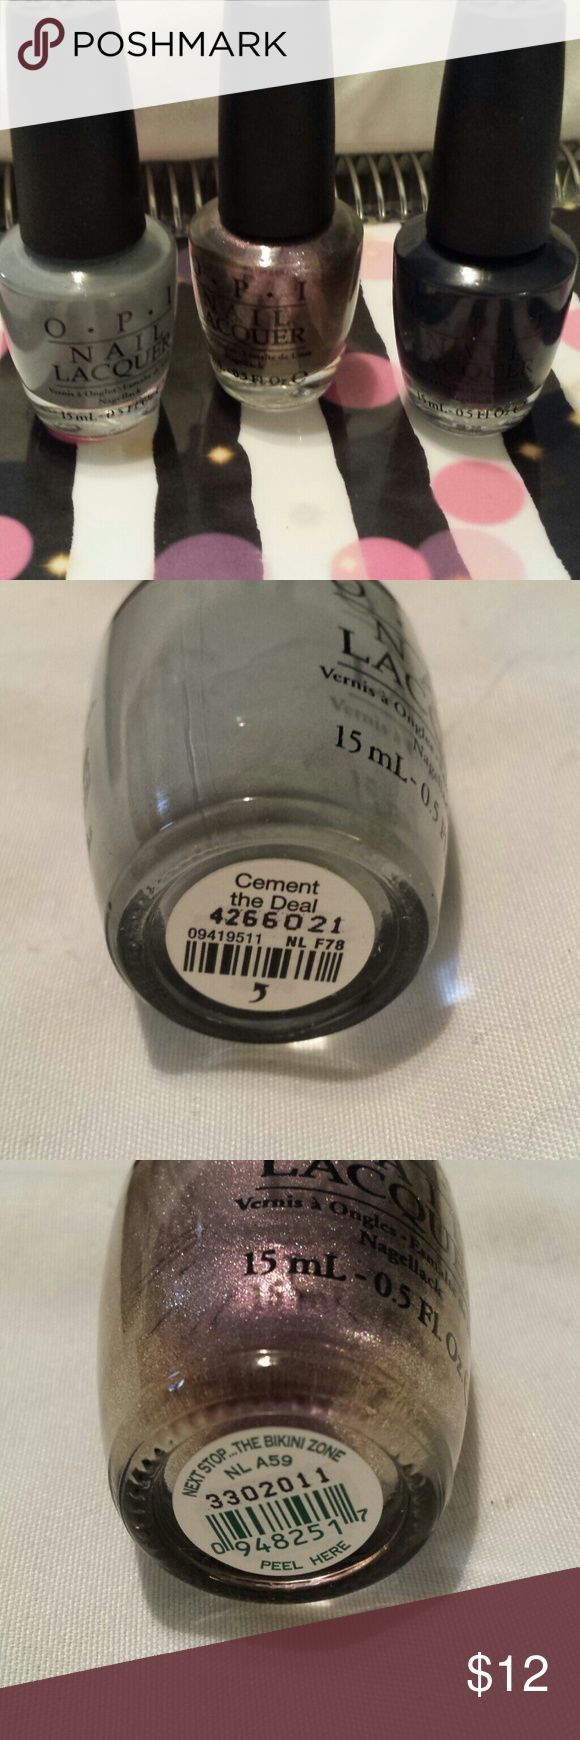 Set of 3 OPI Nail Polishes This listing includes 3 practically unused OPI nail polishes in the shades Cement The Deal, Next Stop...The Bikini Zone, and Dark Side Of The Moon. Be sure to check out all my other listings as many new items are being listed daily and for the month of February, you can save 20% when you bundle 3+ listings! Every purchase always includes some surprise goodies as well! OPI Makeup